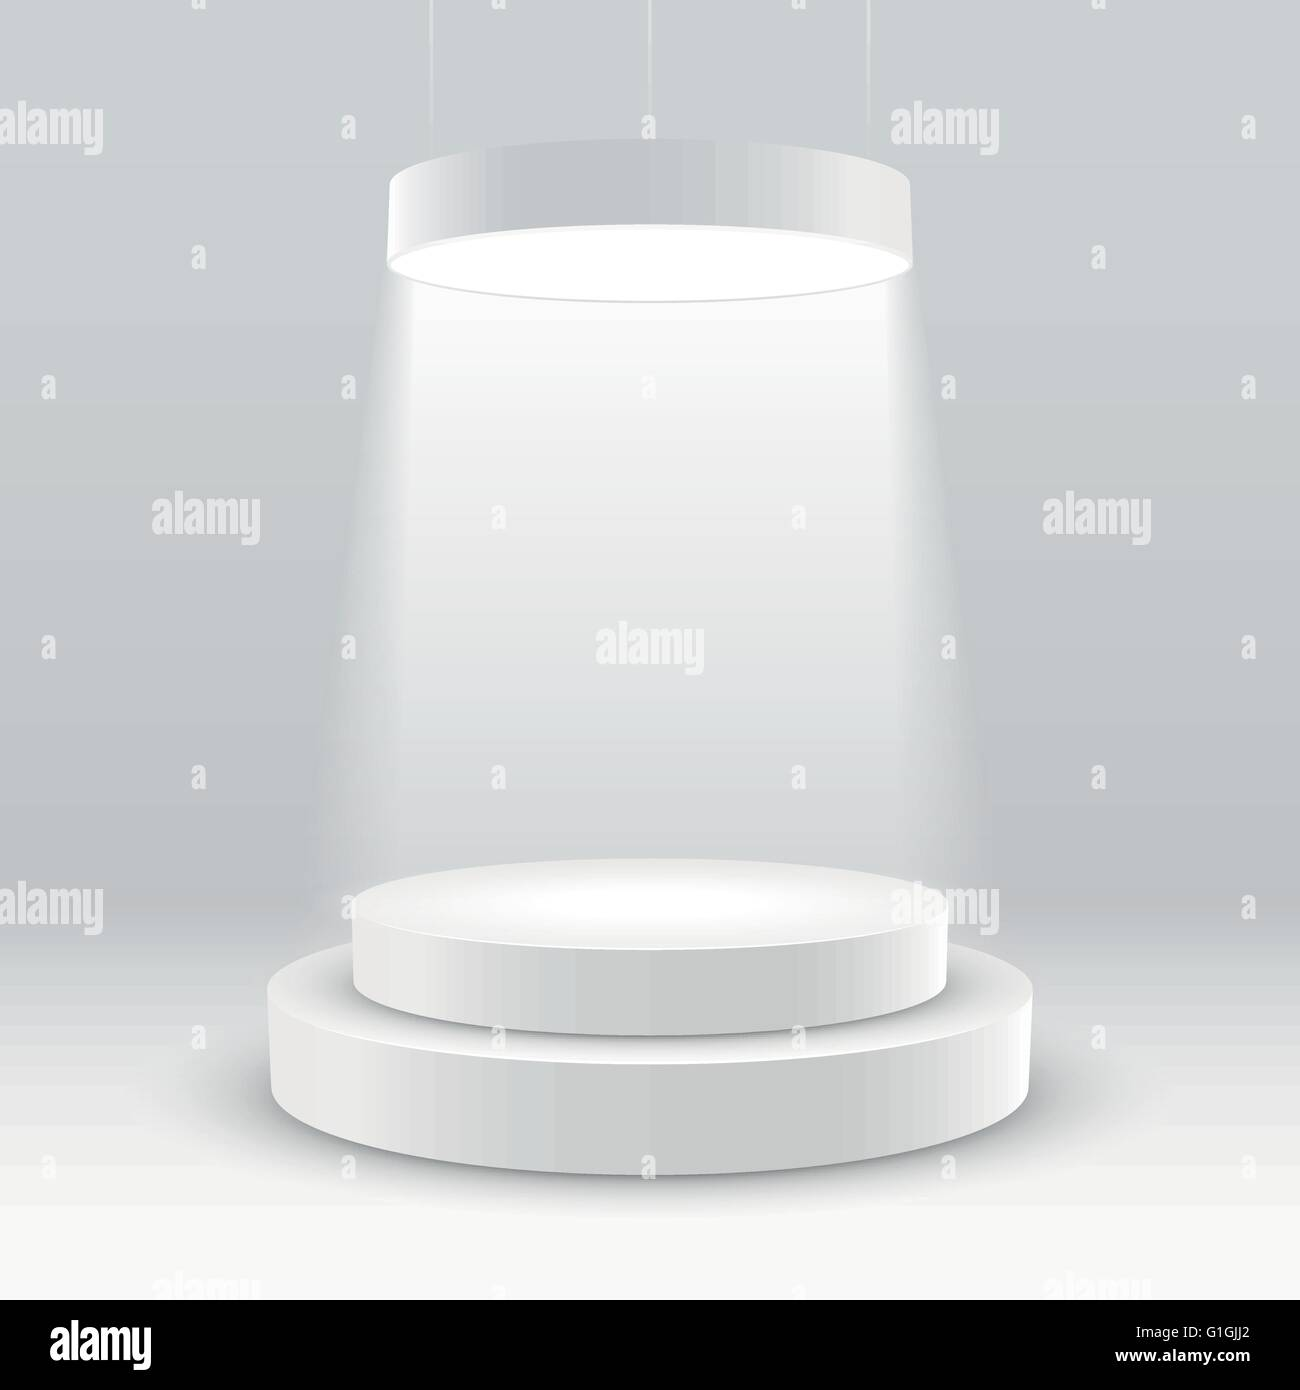 illuminated white round podium vector illustration. Stock Vector